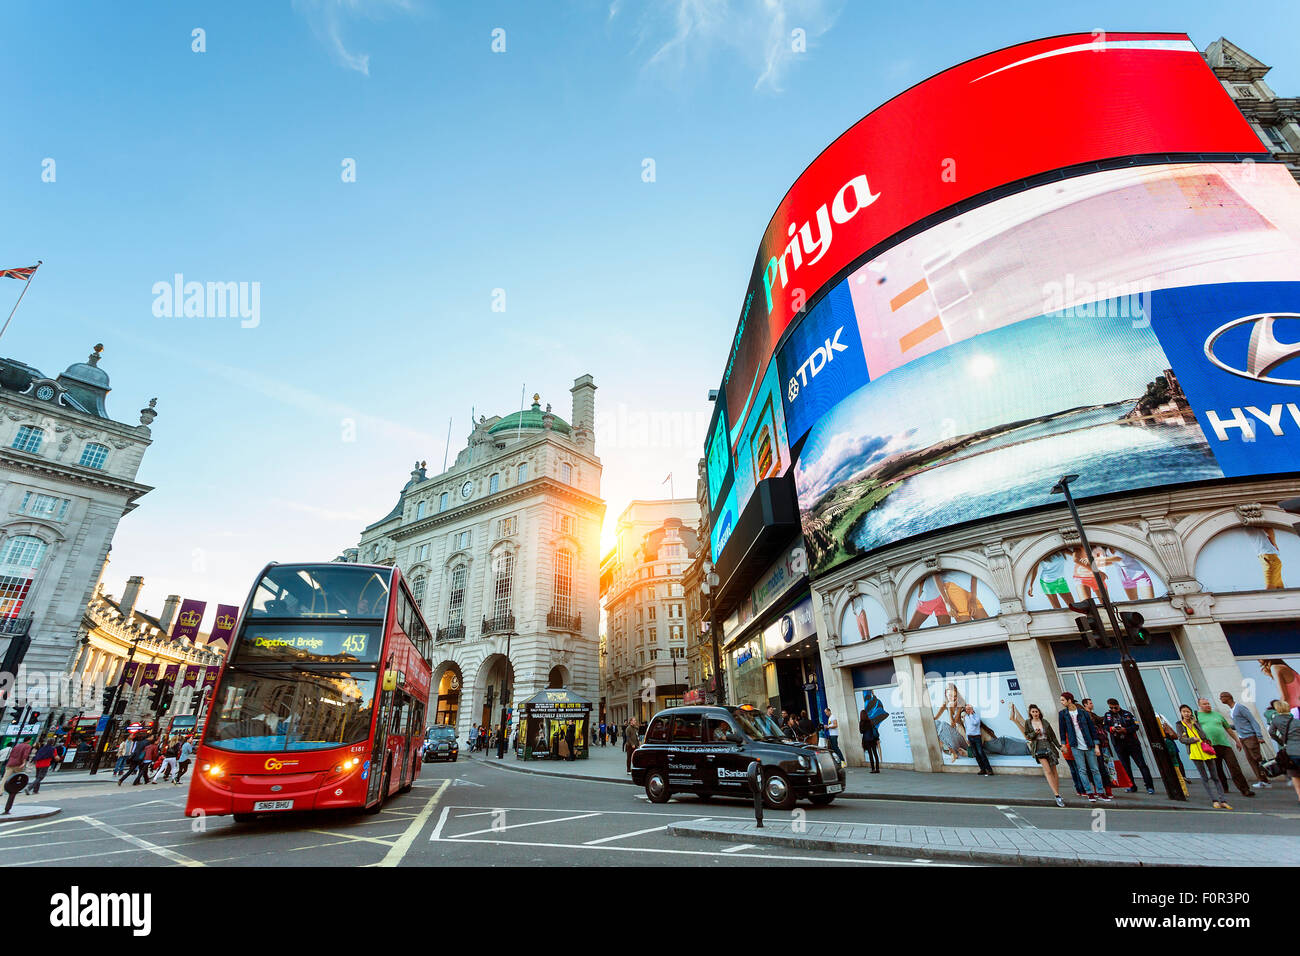 London, Traffic at Piccadilly Circus - Stock Image